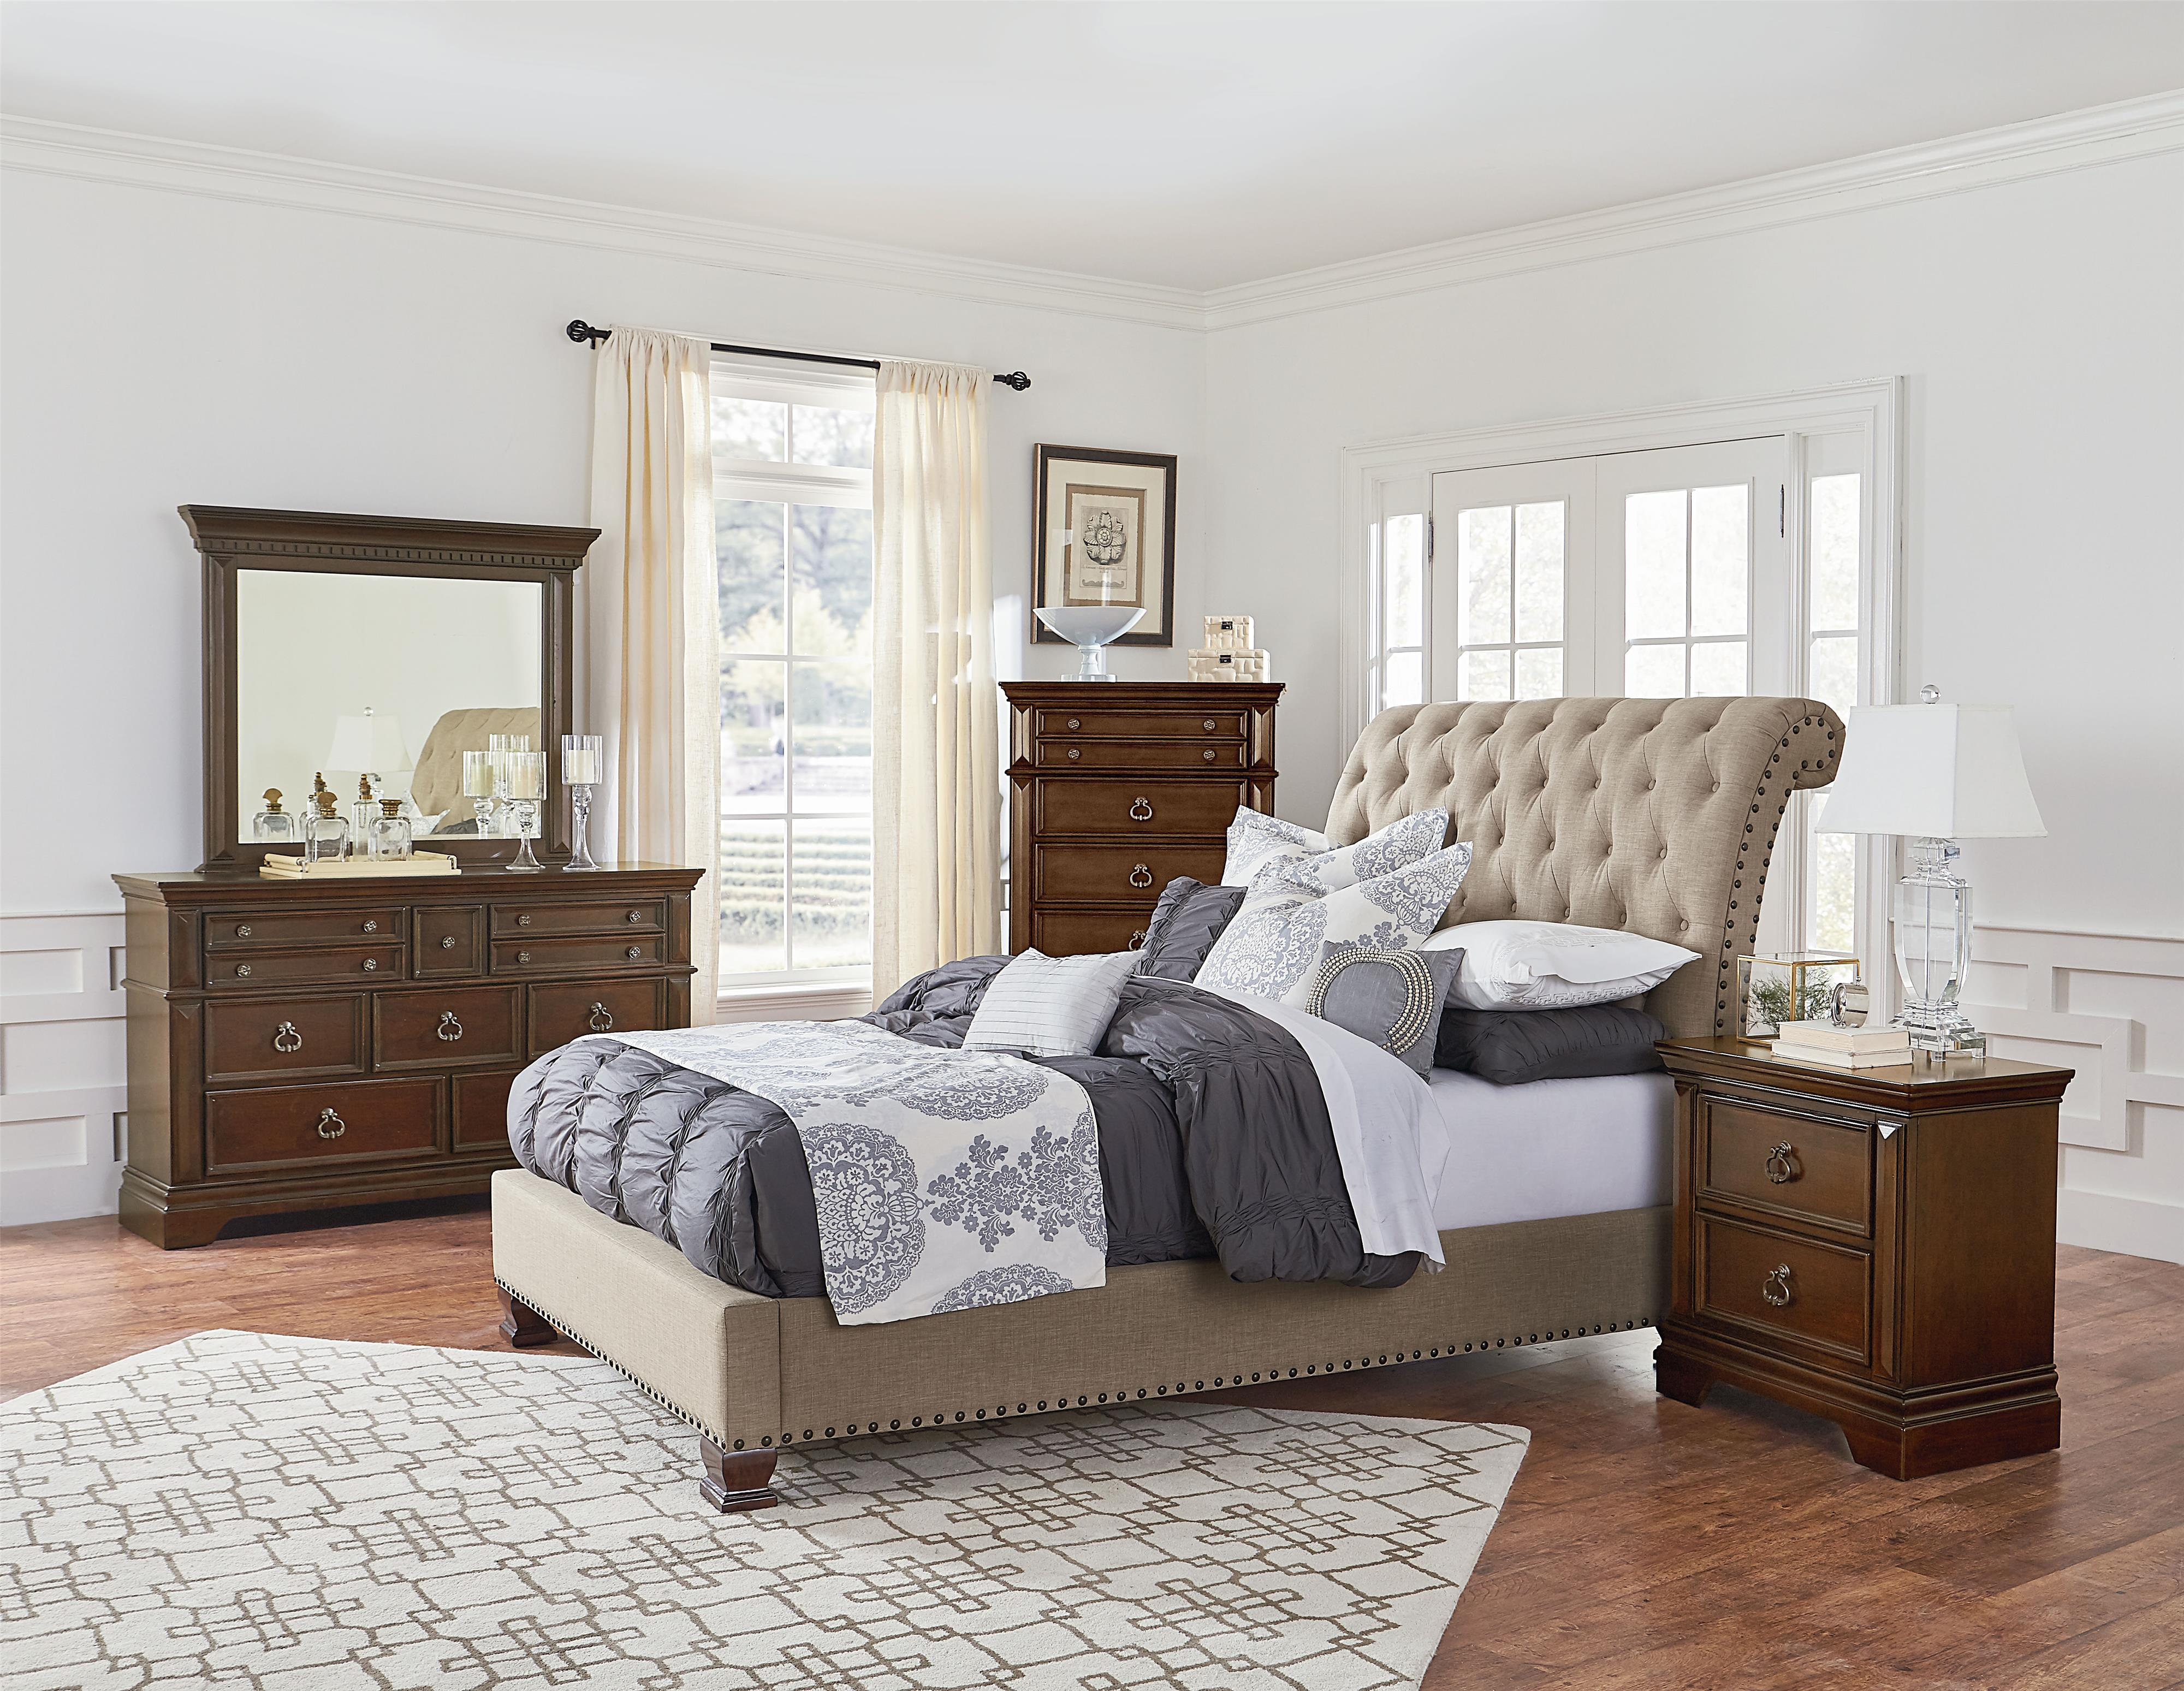 Standard Furniture Charleston Upholstered Bedroom Group - Item Number: 96000 K Bedroom Group 2